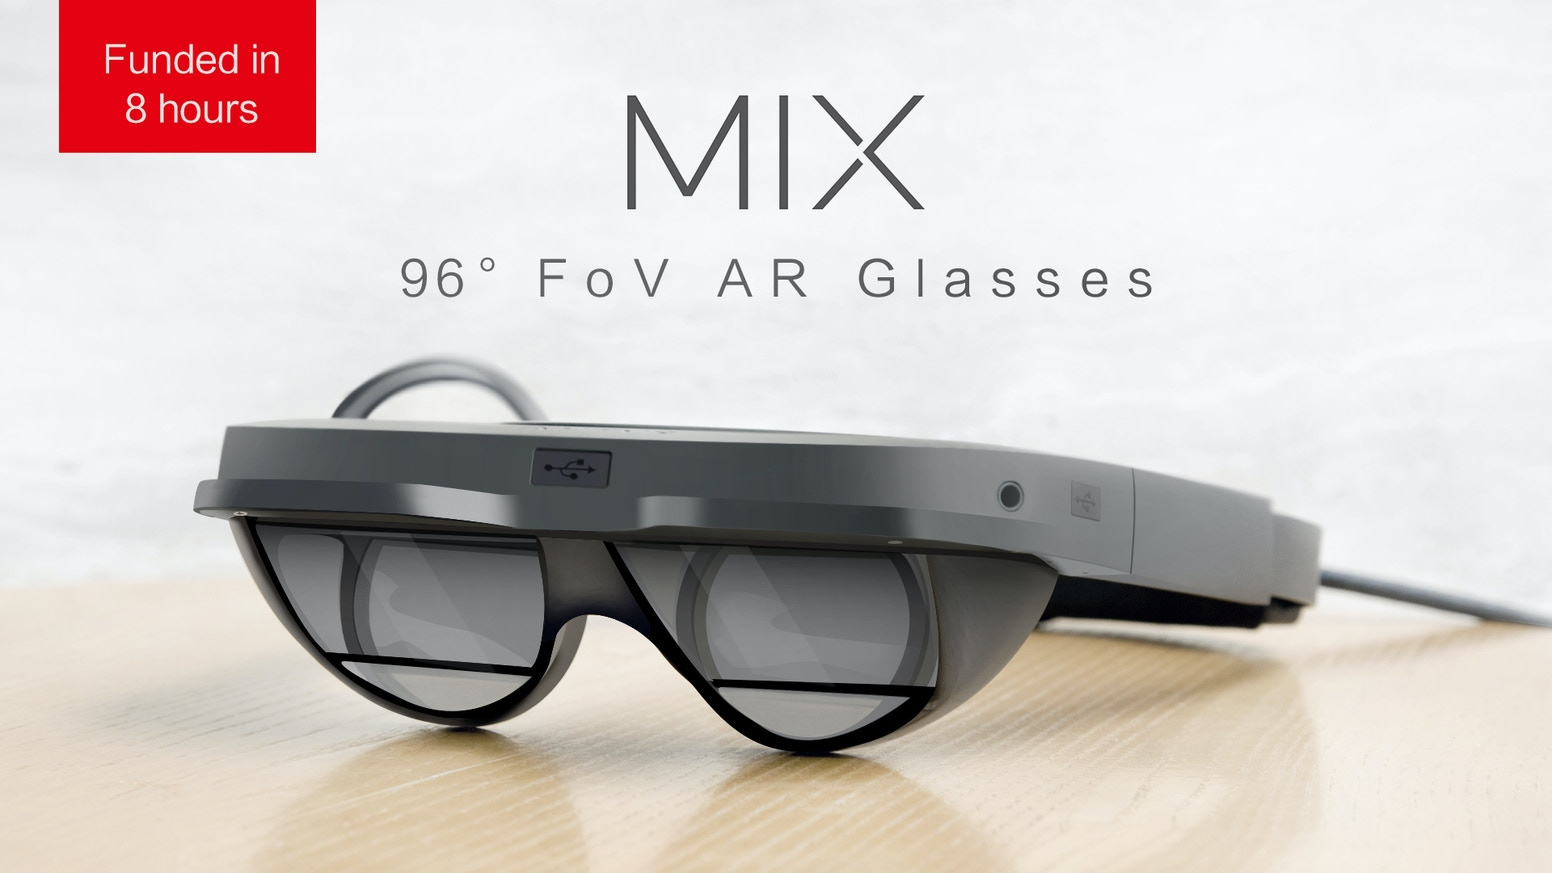 11db9f1cb3 Augmented Reality glasses compatible with SteamVR applications let you  bring virtual images and games into your